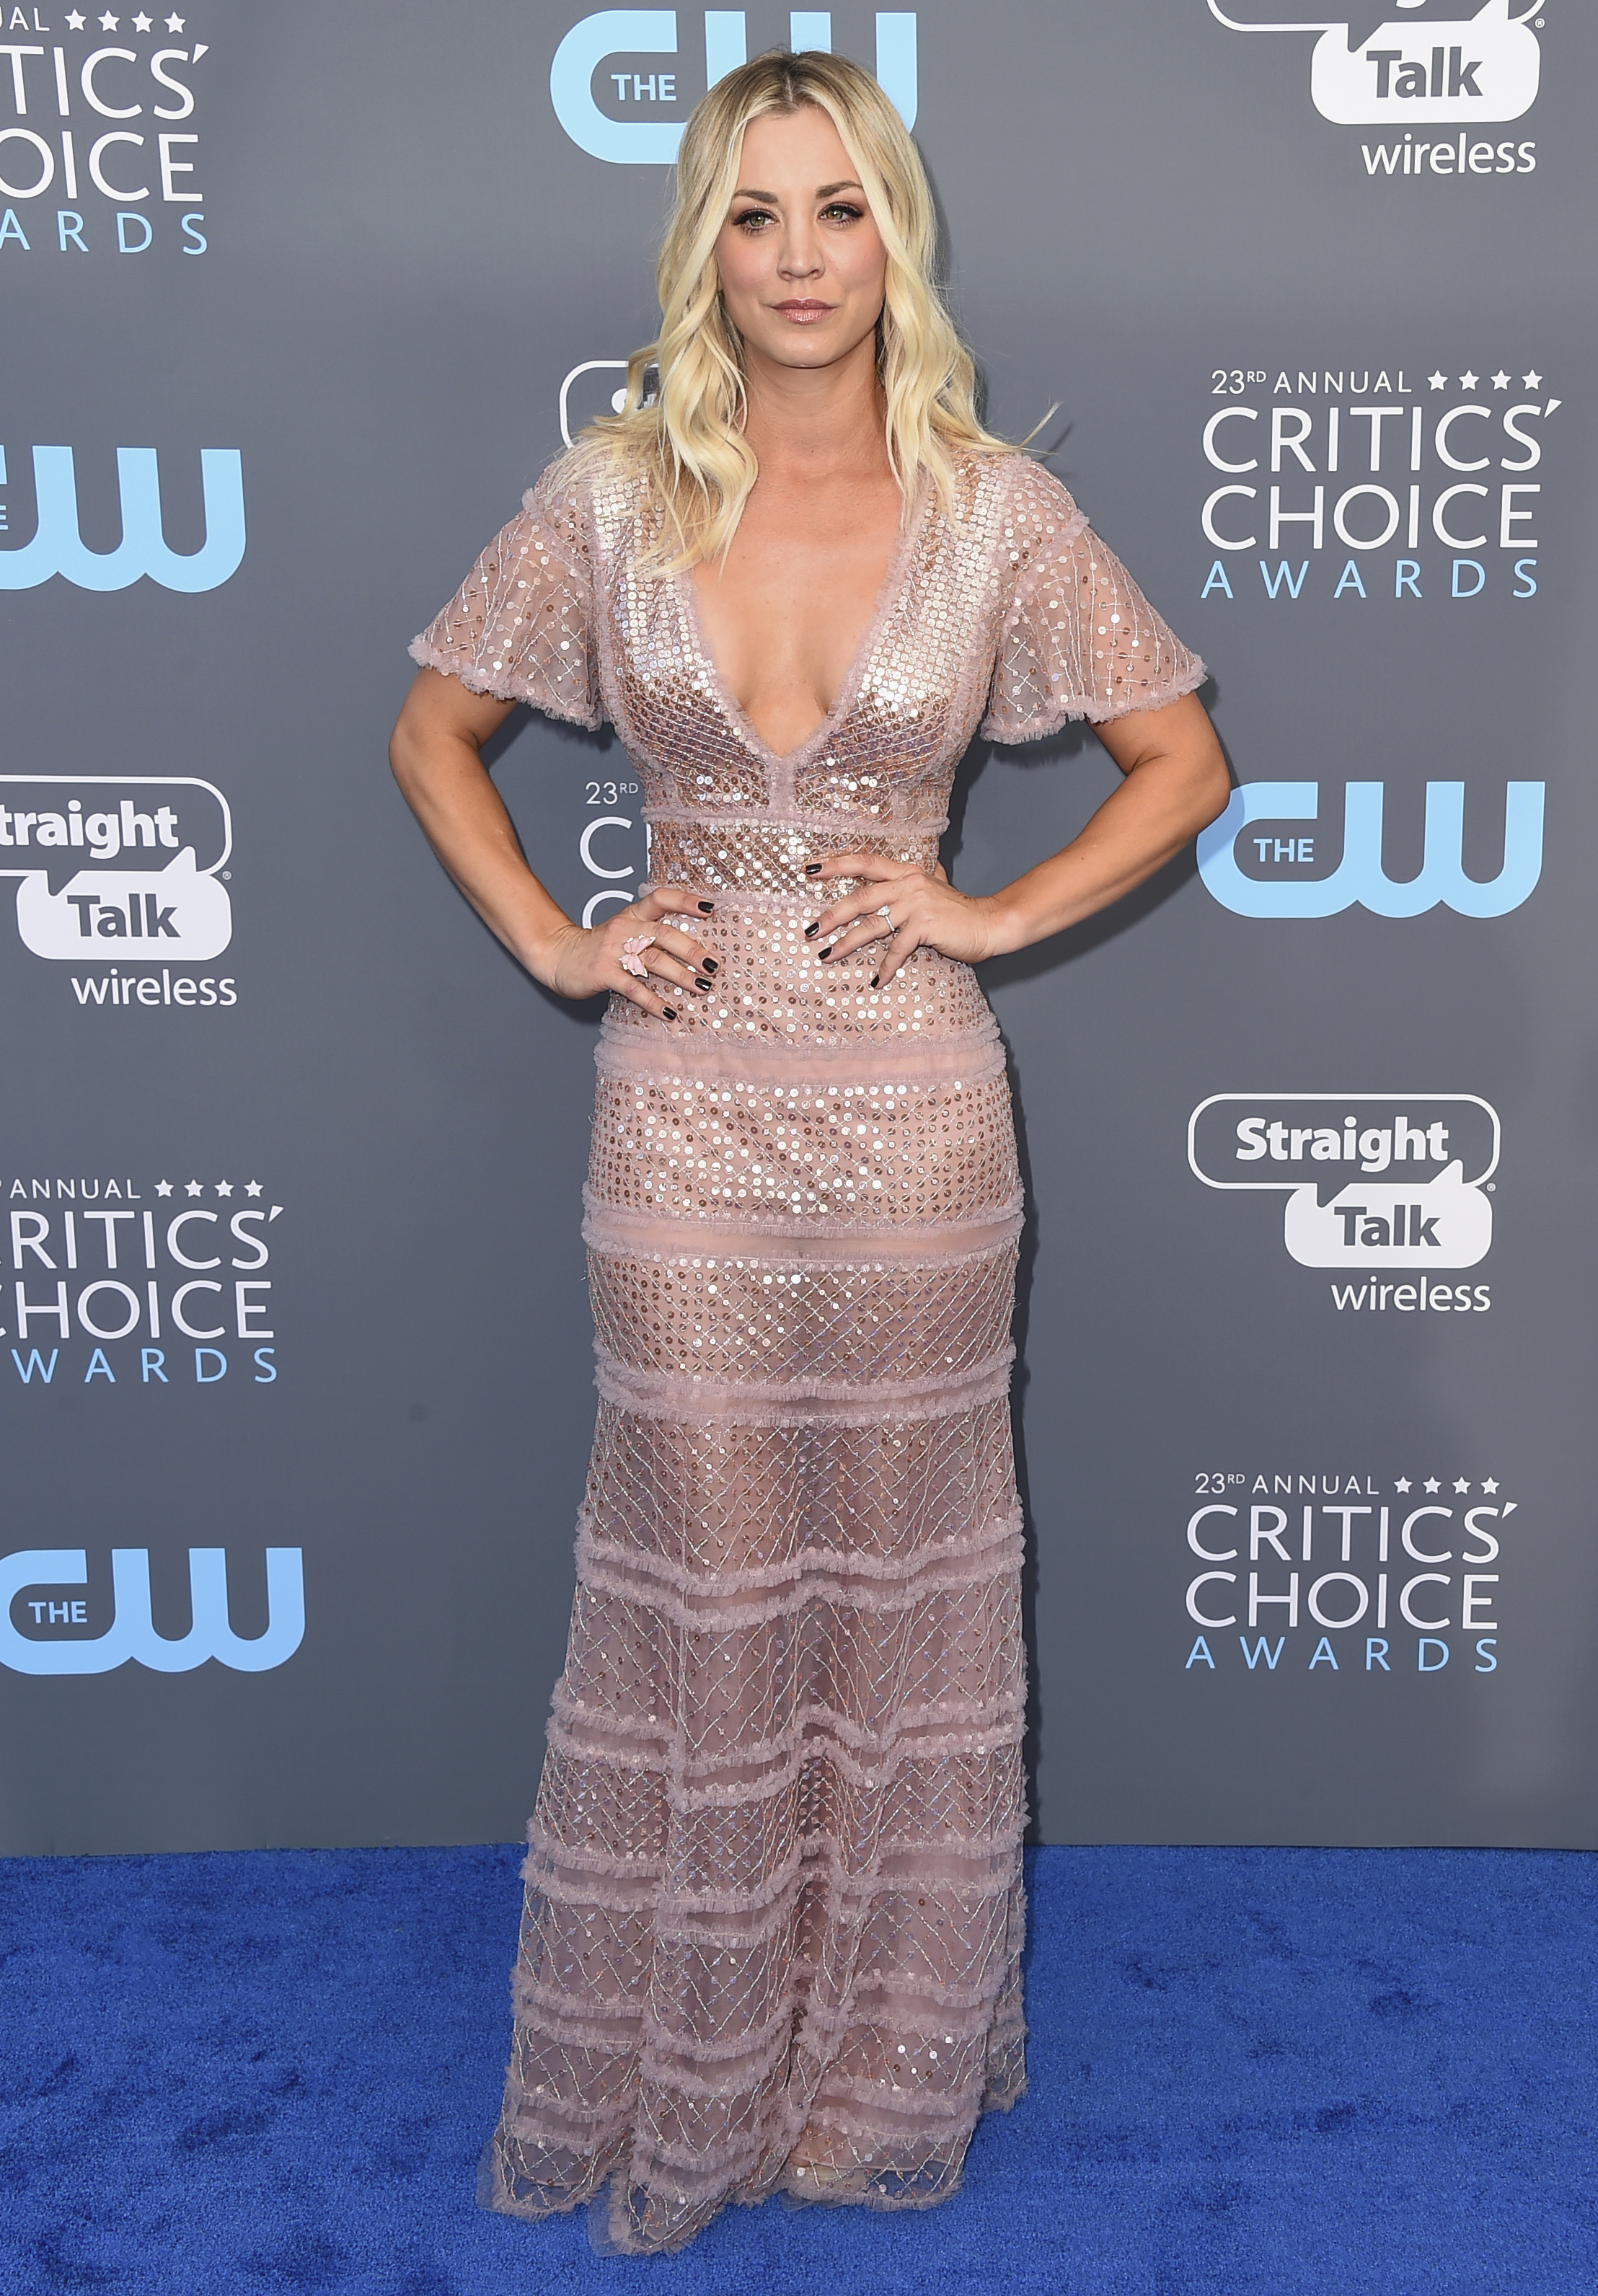 <div class='meta'><div class='origin-logo' data-origin='AP'></div><span class='caption-text' data-credit='Jordan Strauss/Invision/AP'>Kaley Cuoco arrives at the 23rd annual Critics' Choice Awards at the Barker Hangar on Thursday, Jan. 11, 2018, in Santa Monica, Calif.</span></div>